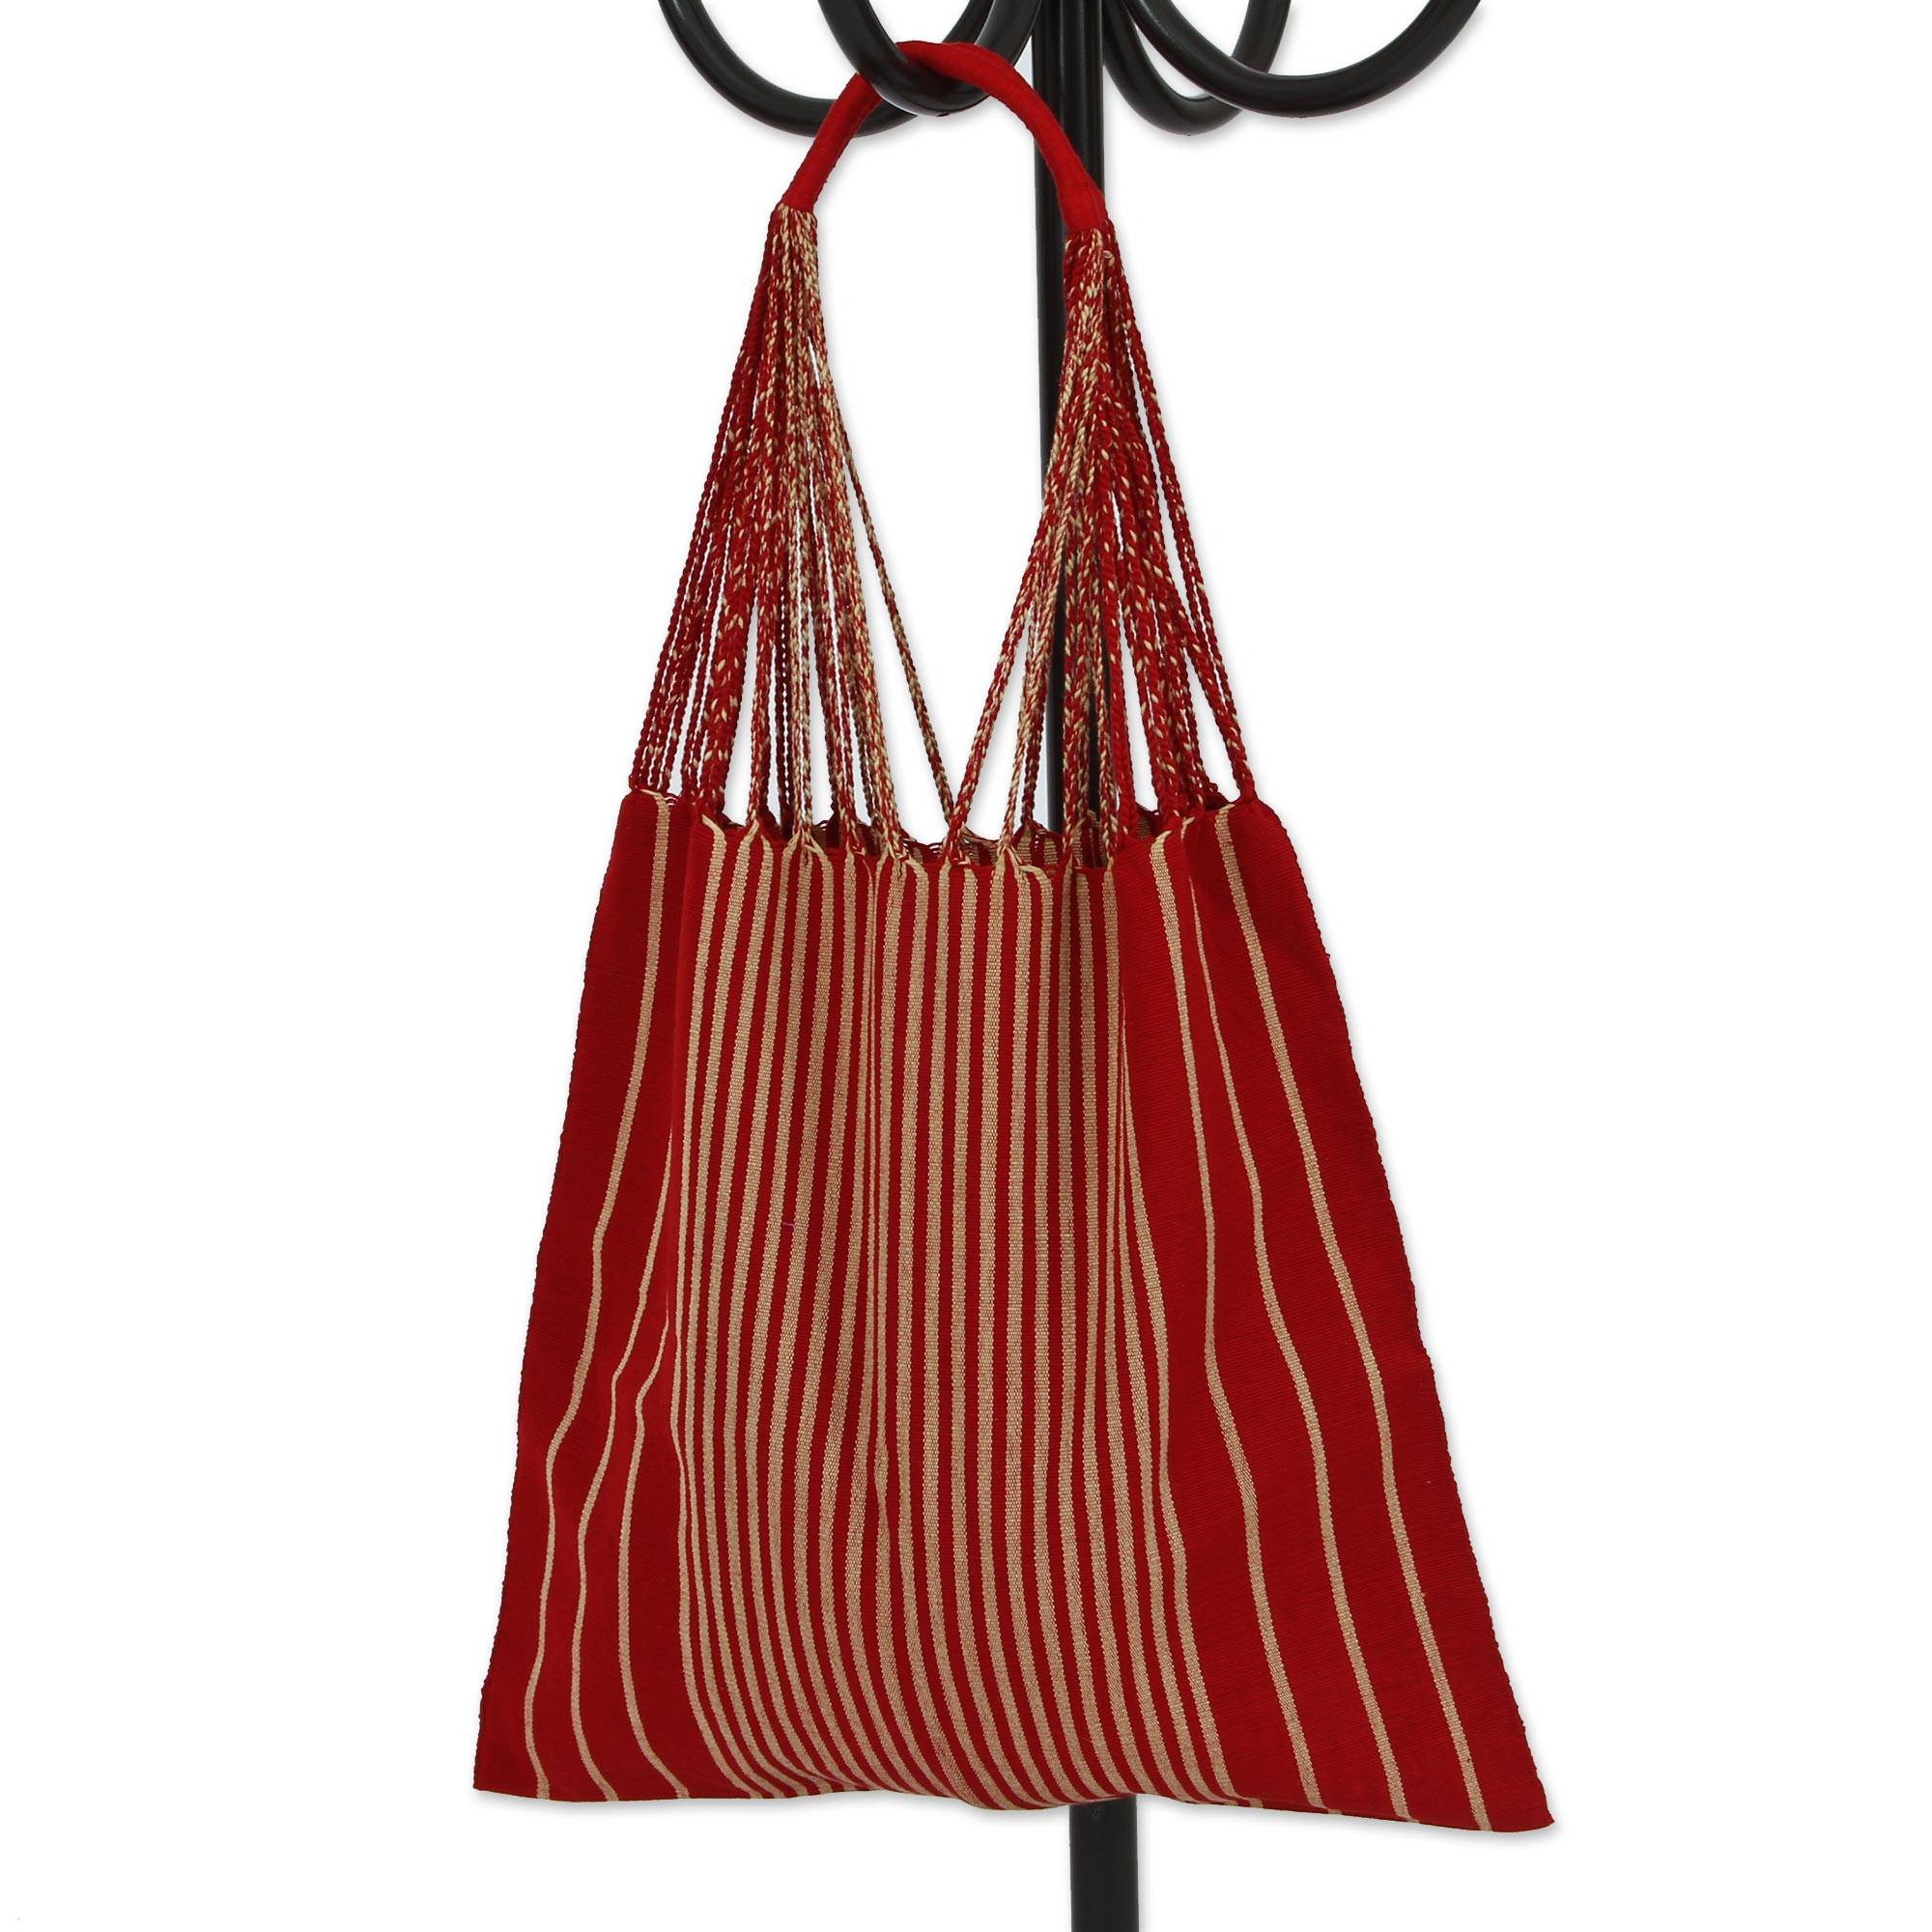 9da0dc4a1 UNICEF Market | Handwoven 100% Cotton Barn Red and Beige Striped ...